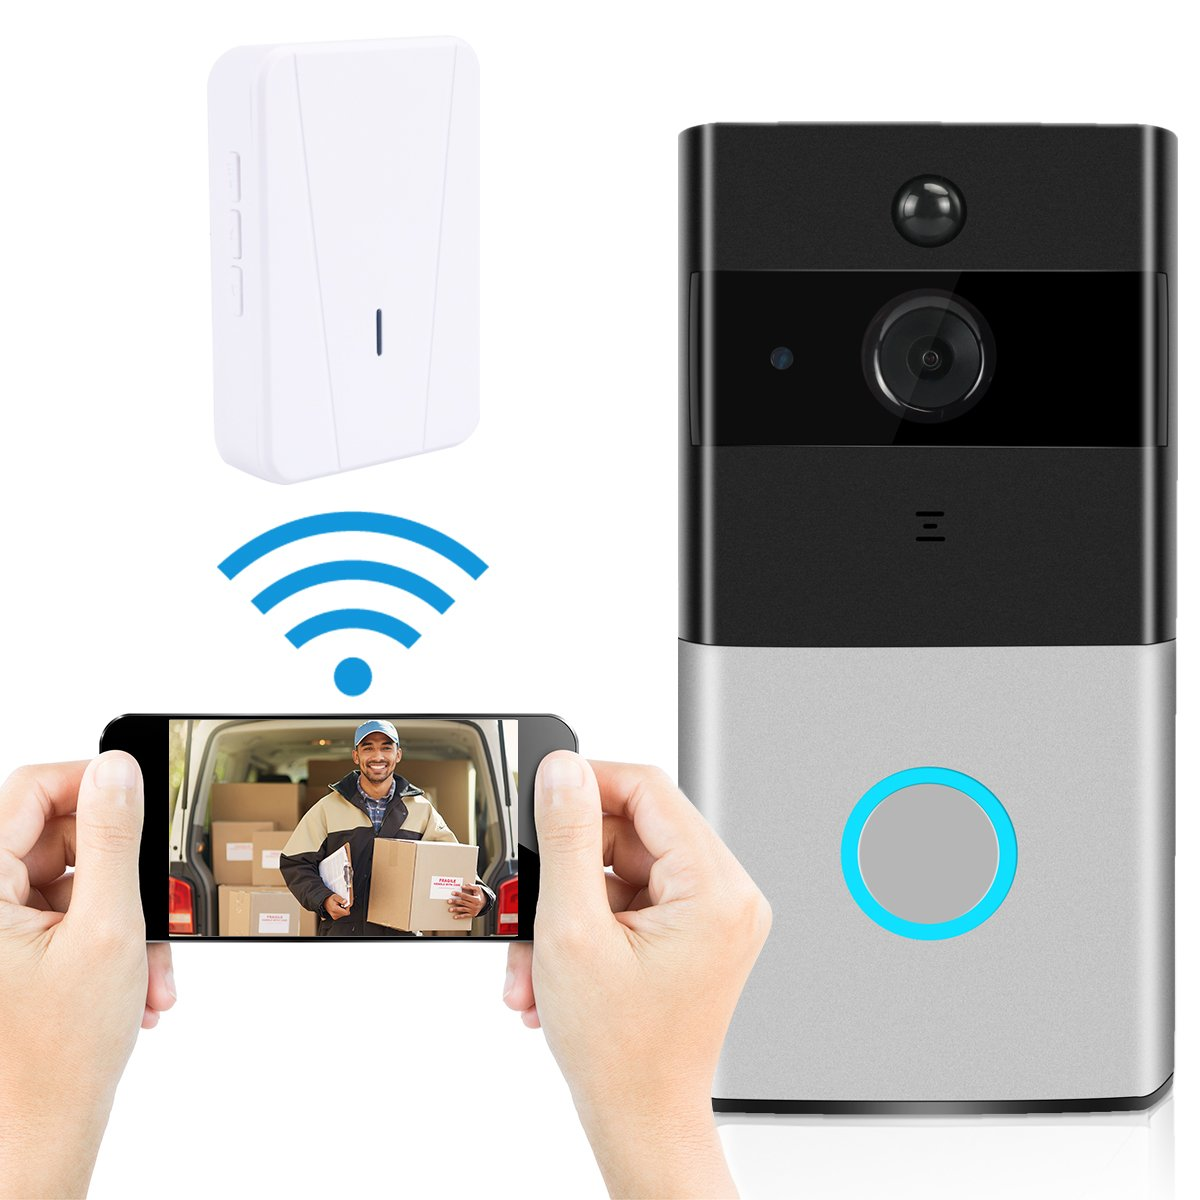 Video Doorbell, Ustyle Wireless Door Bell Smart WiFi Camera Video Doorbell Security Camera with Motion Detection 720P HD, Real-Time Two-Way Talk and Video, Night Vision (With Indoor Chime )